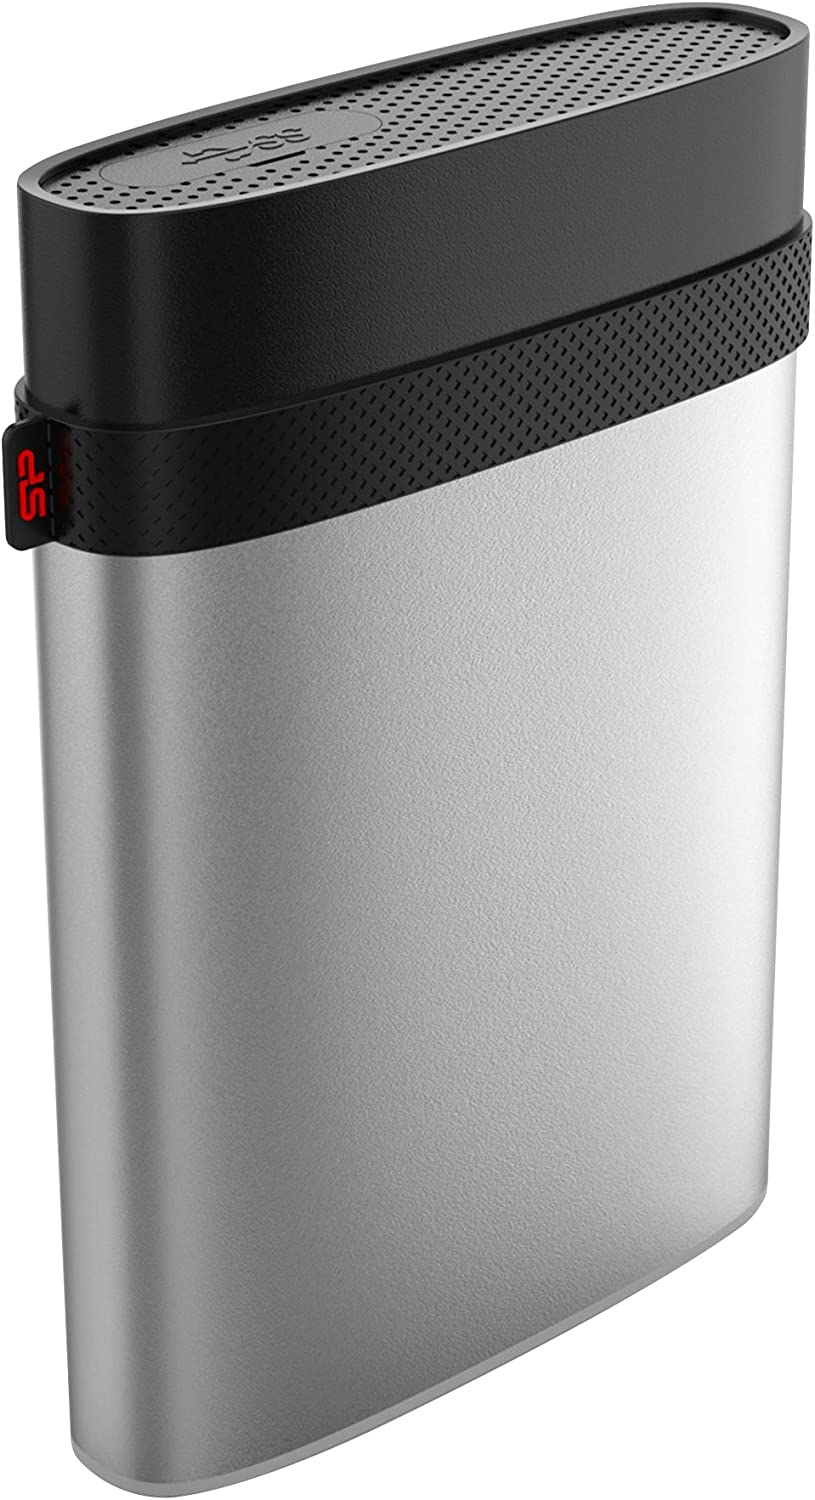 Silicon Power 2TB Armor A85M for Mac Military-grade Shockproof/IP68 Waterproof & Dustproof USB 3.0 2.5-inch External Hard Drive- HFS+ and Time Machine Supported, Silver ( SP020TBPHD85MS3S)